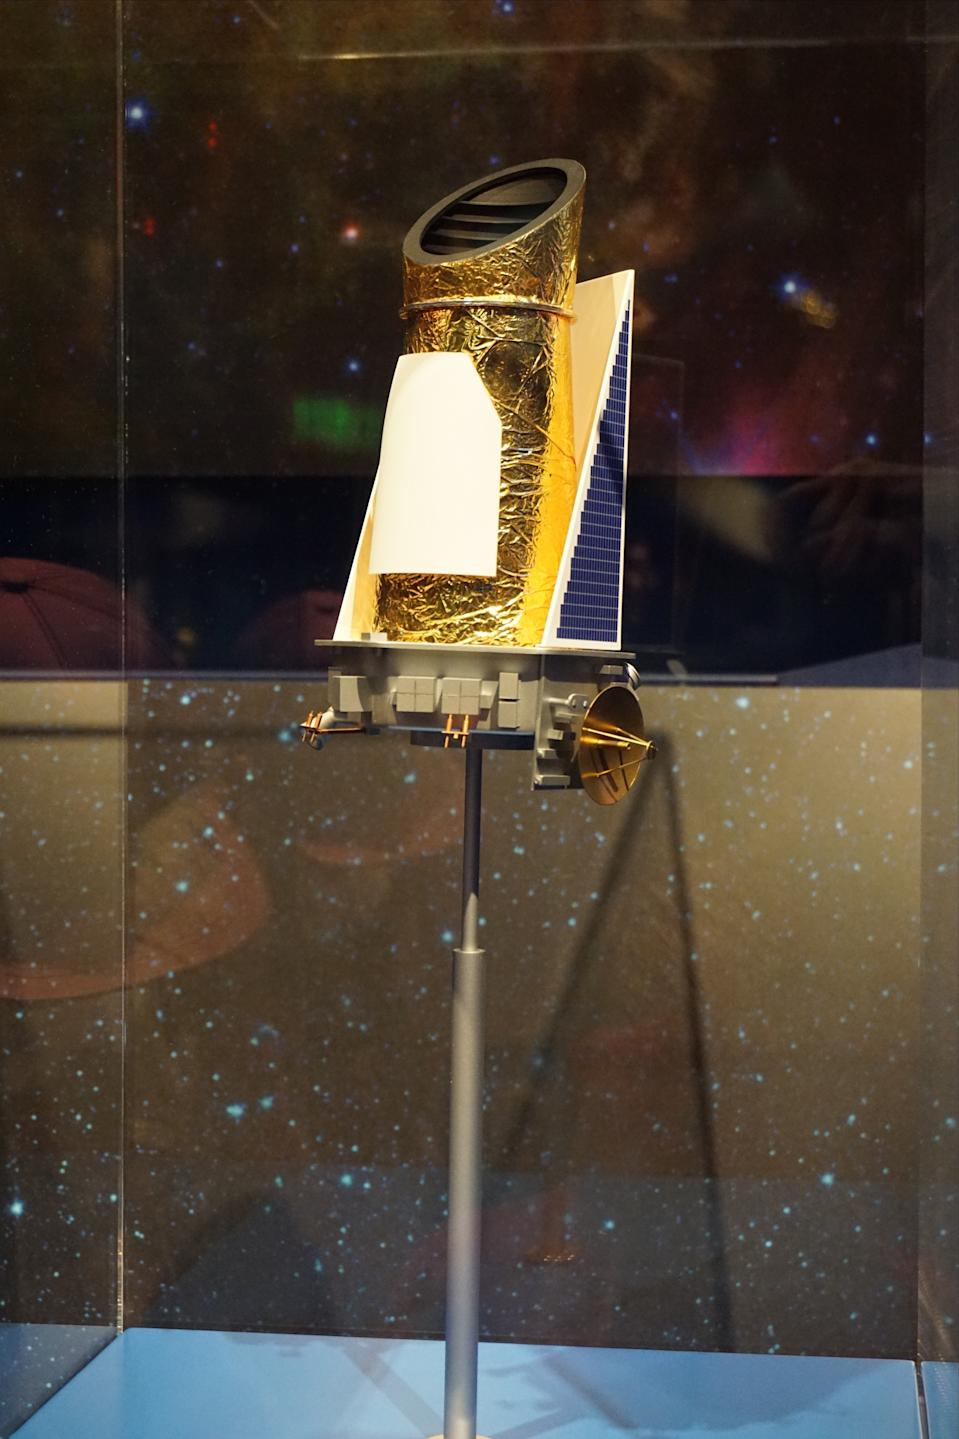 PASADENA, USA - JUNE 06: Kepler Spacecraft is displayed to visitors JPL (Jet Propulsion Laboratory) in Pasadena, USA on June 06, 2016. JPL (Jet Propulsion Laboratory) opens its gate for 2 days.  (Photo by Mintaha Neslihan Eroglu/Anadolu Agency/Getty Images)